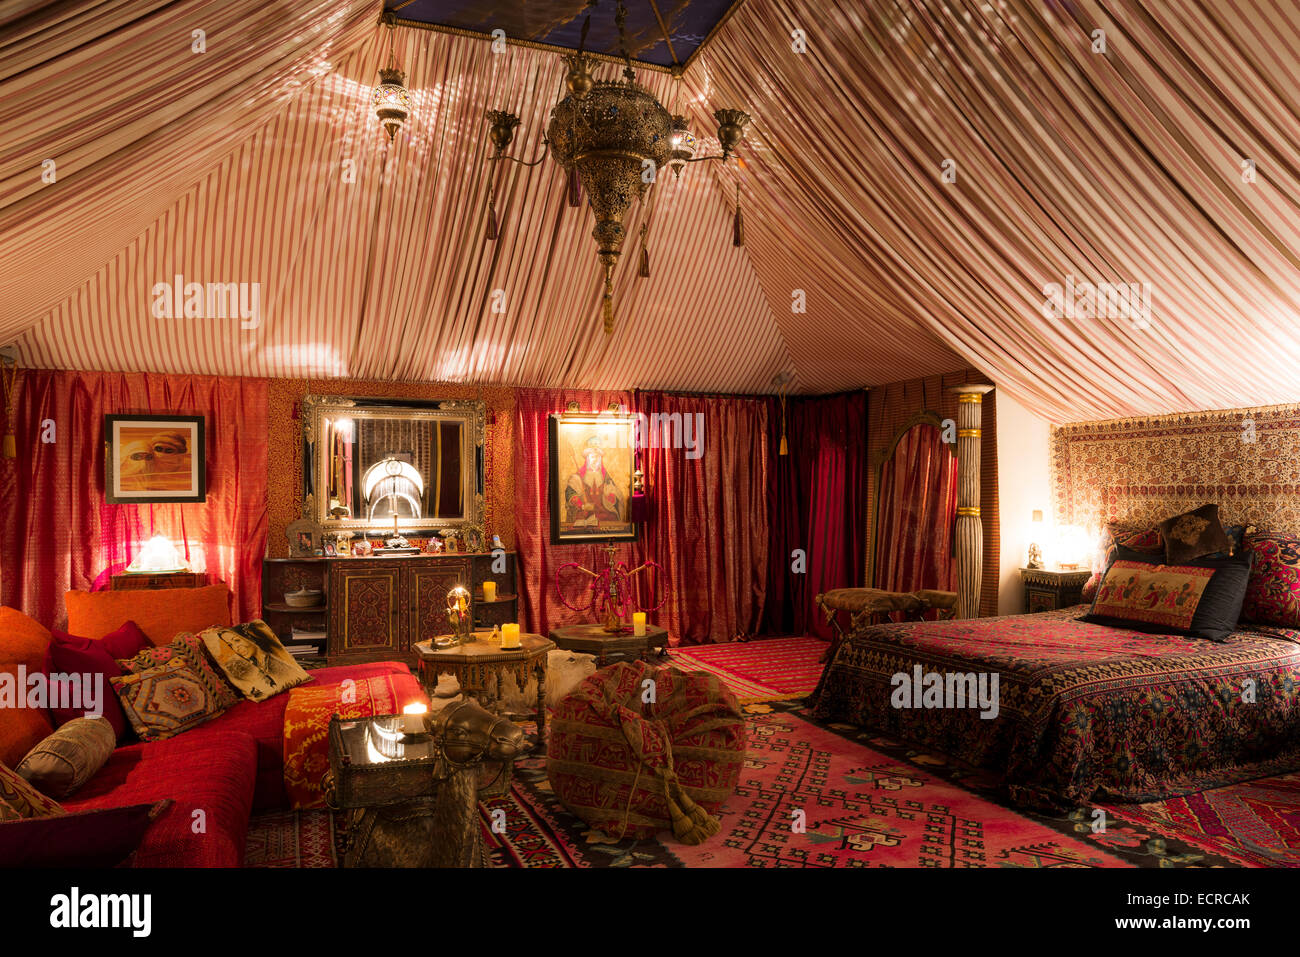 Superieur Tent Style Boudoir Bedroom With Moroccan Rugs, Oriental Fabrics And  Hexagonal Occasional Tables